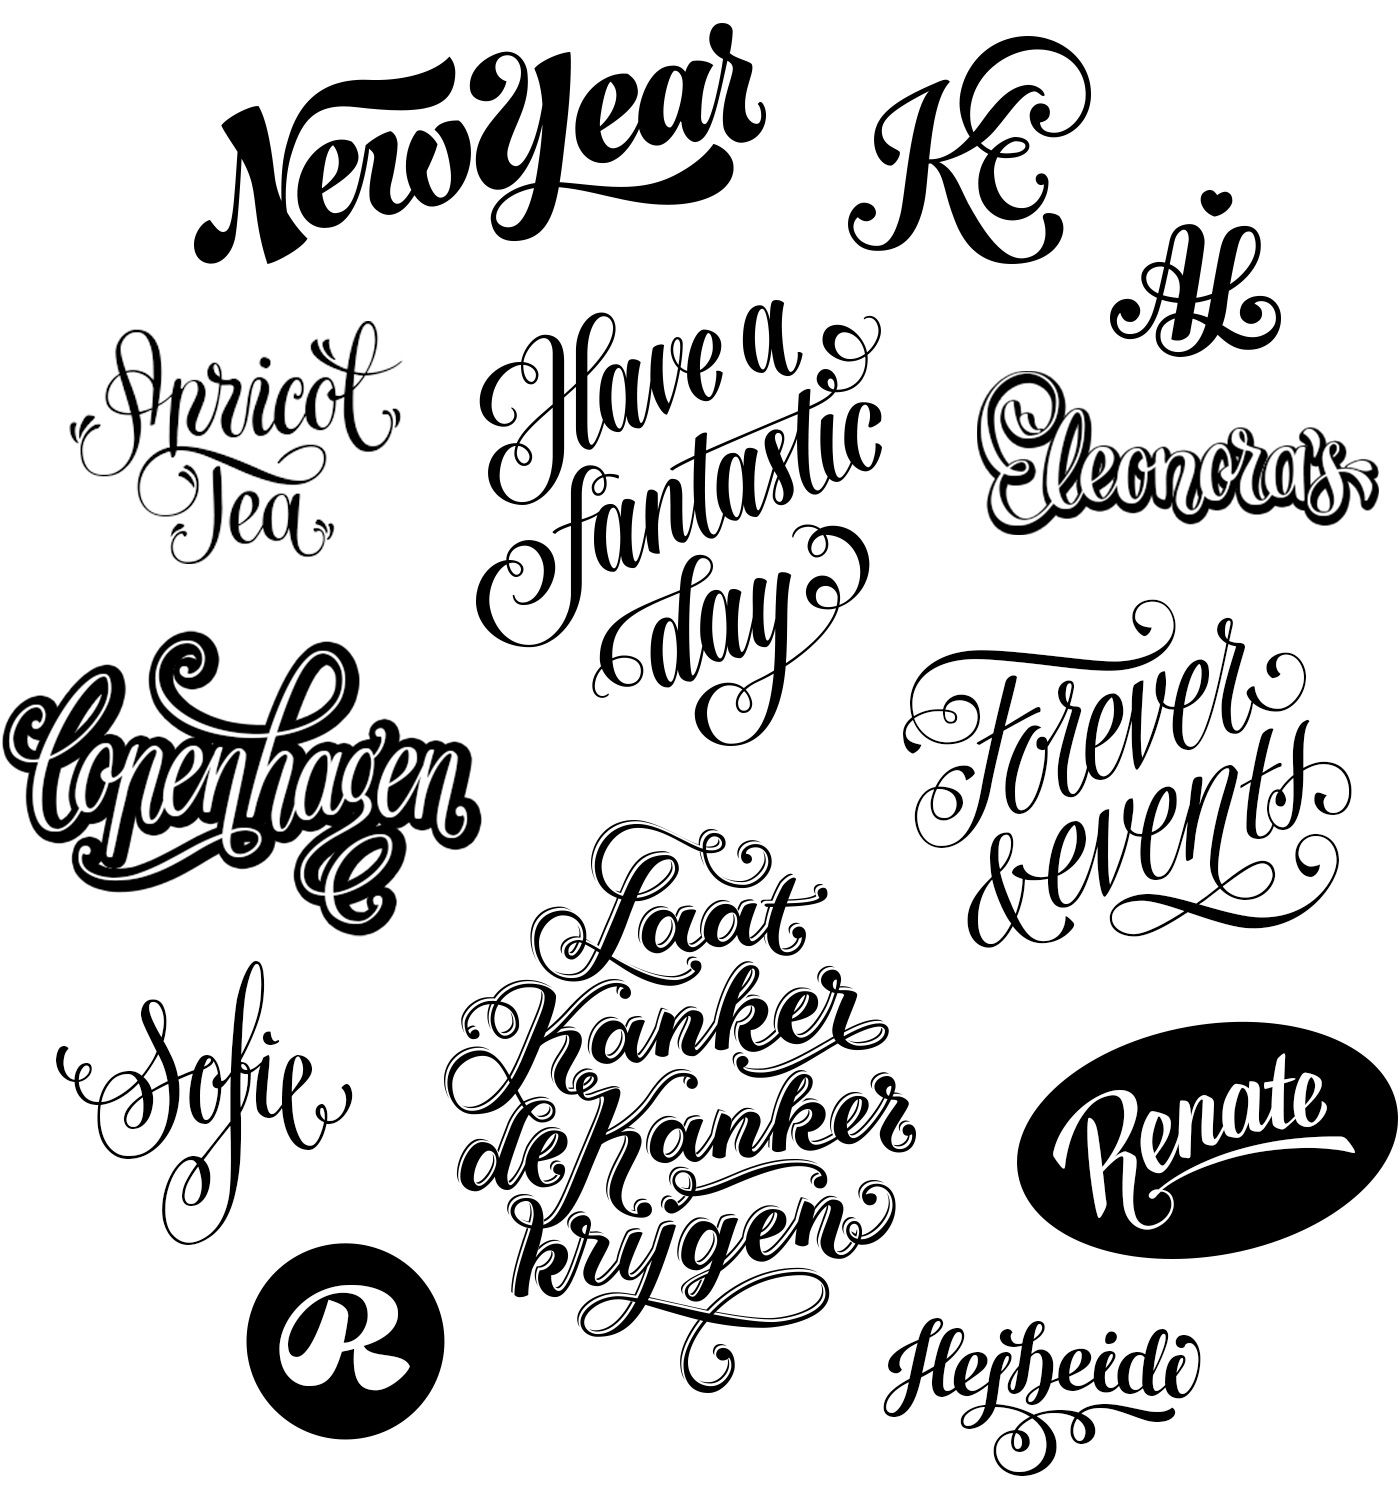 Lettering, Logos And Hand Lettering On Pinterest | Hand lettering